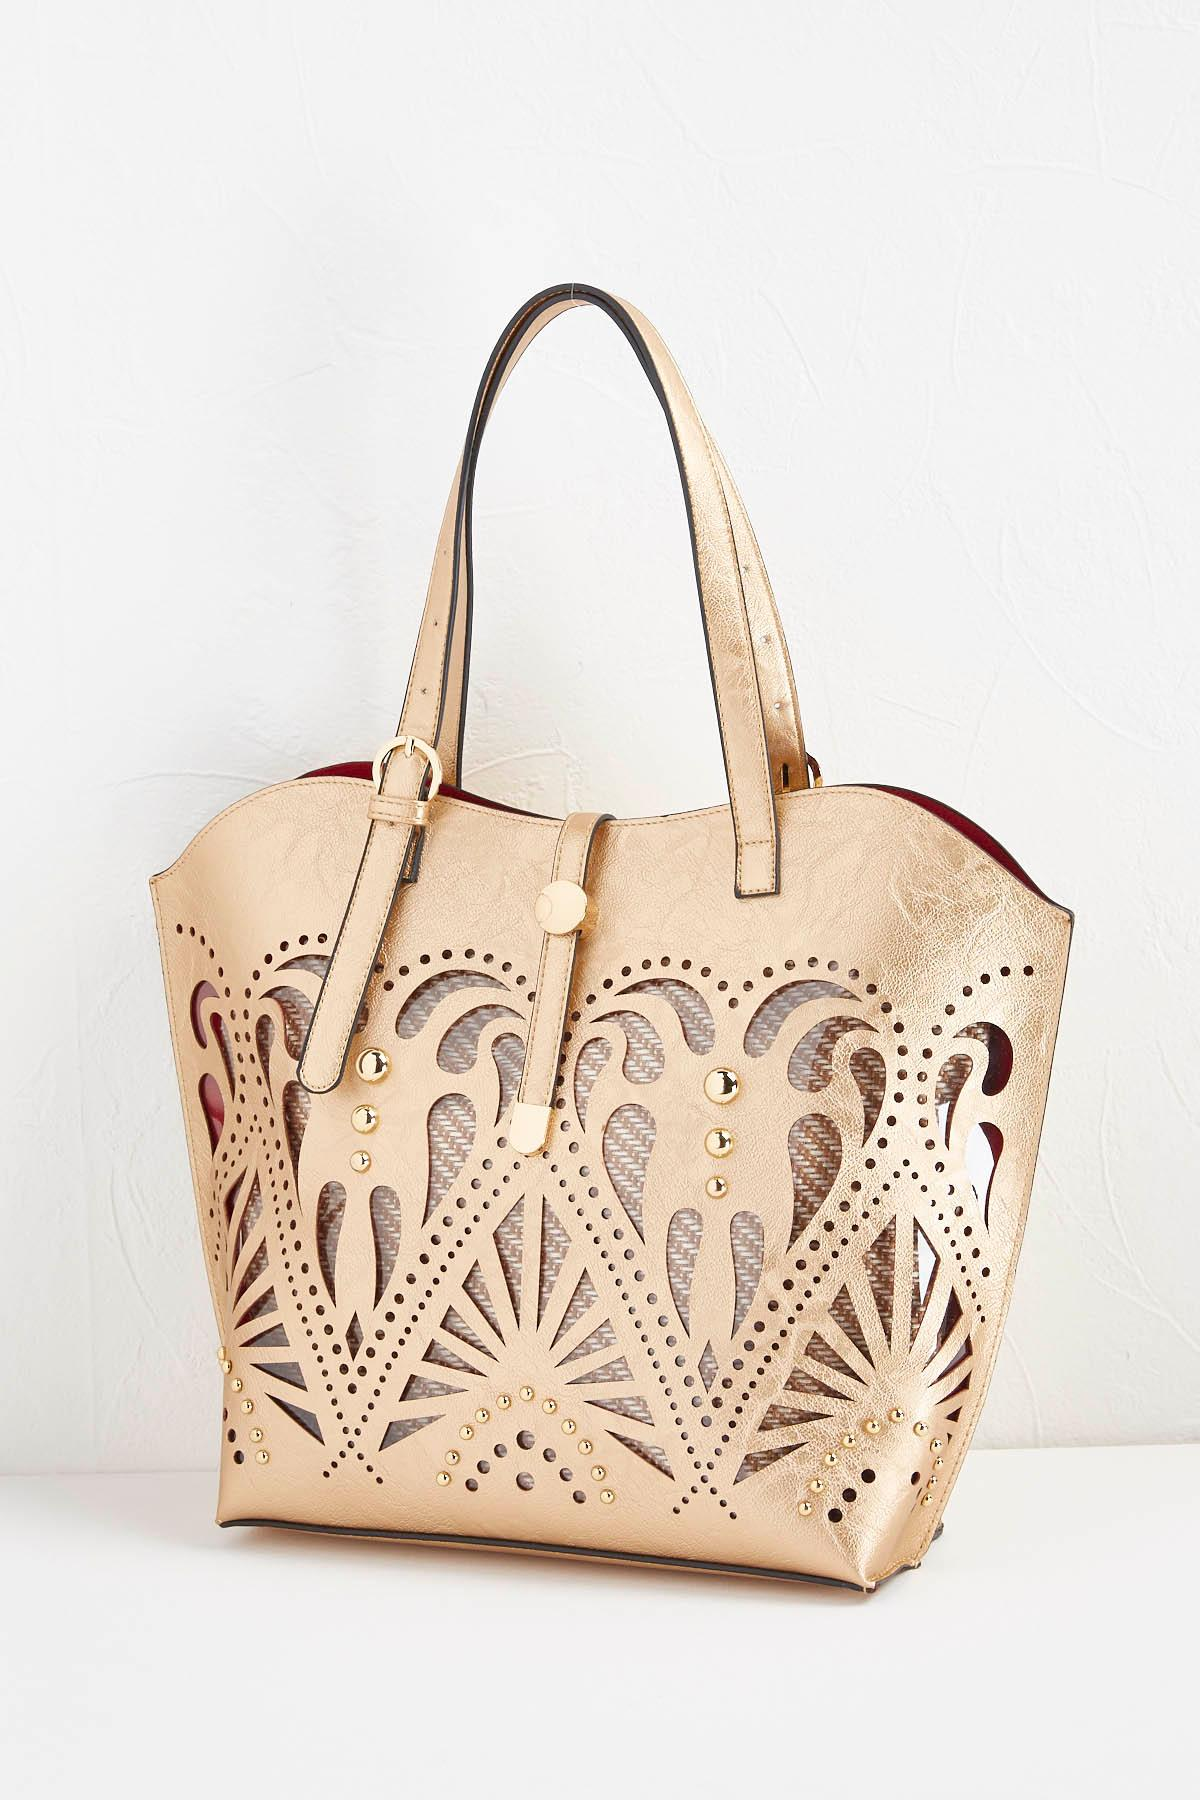 Cutout Bag In Bag Tote